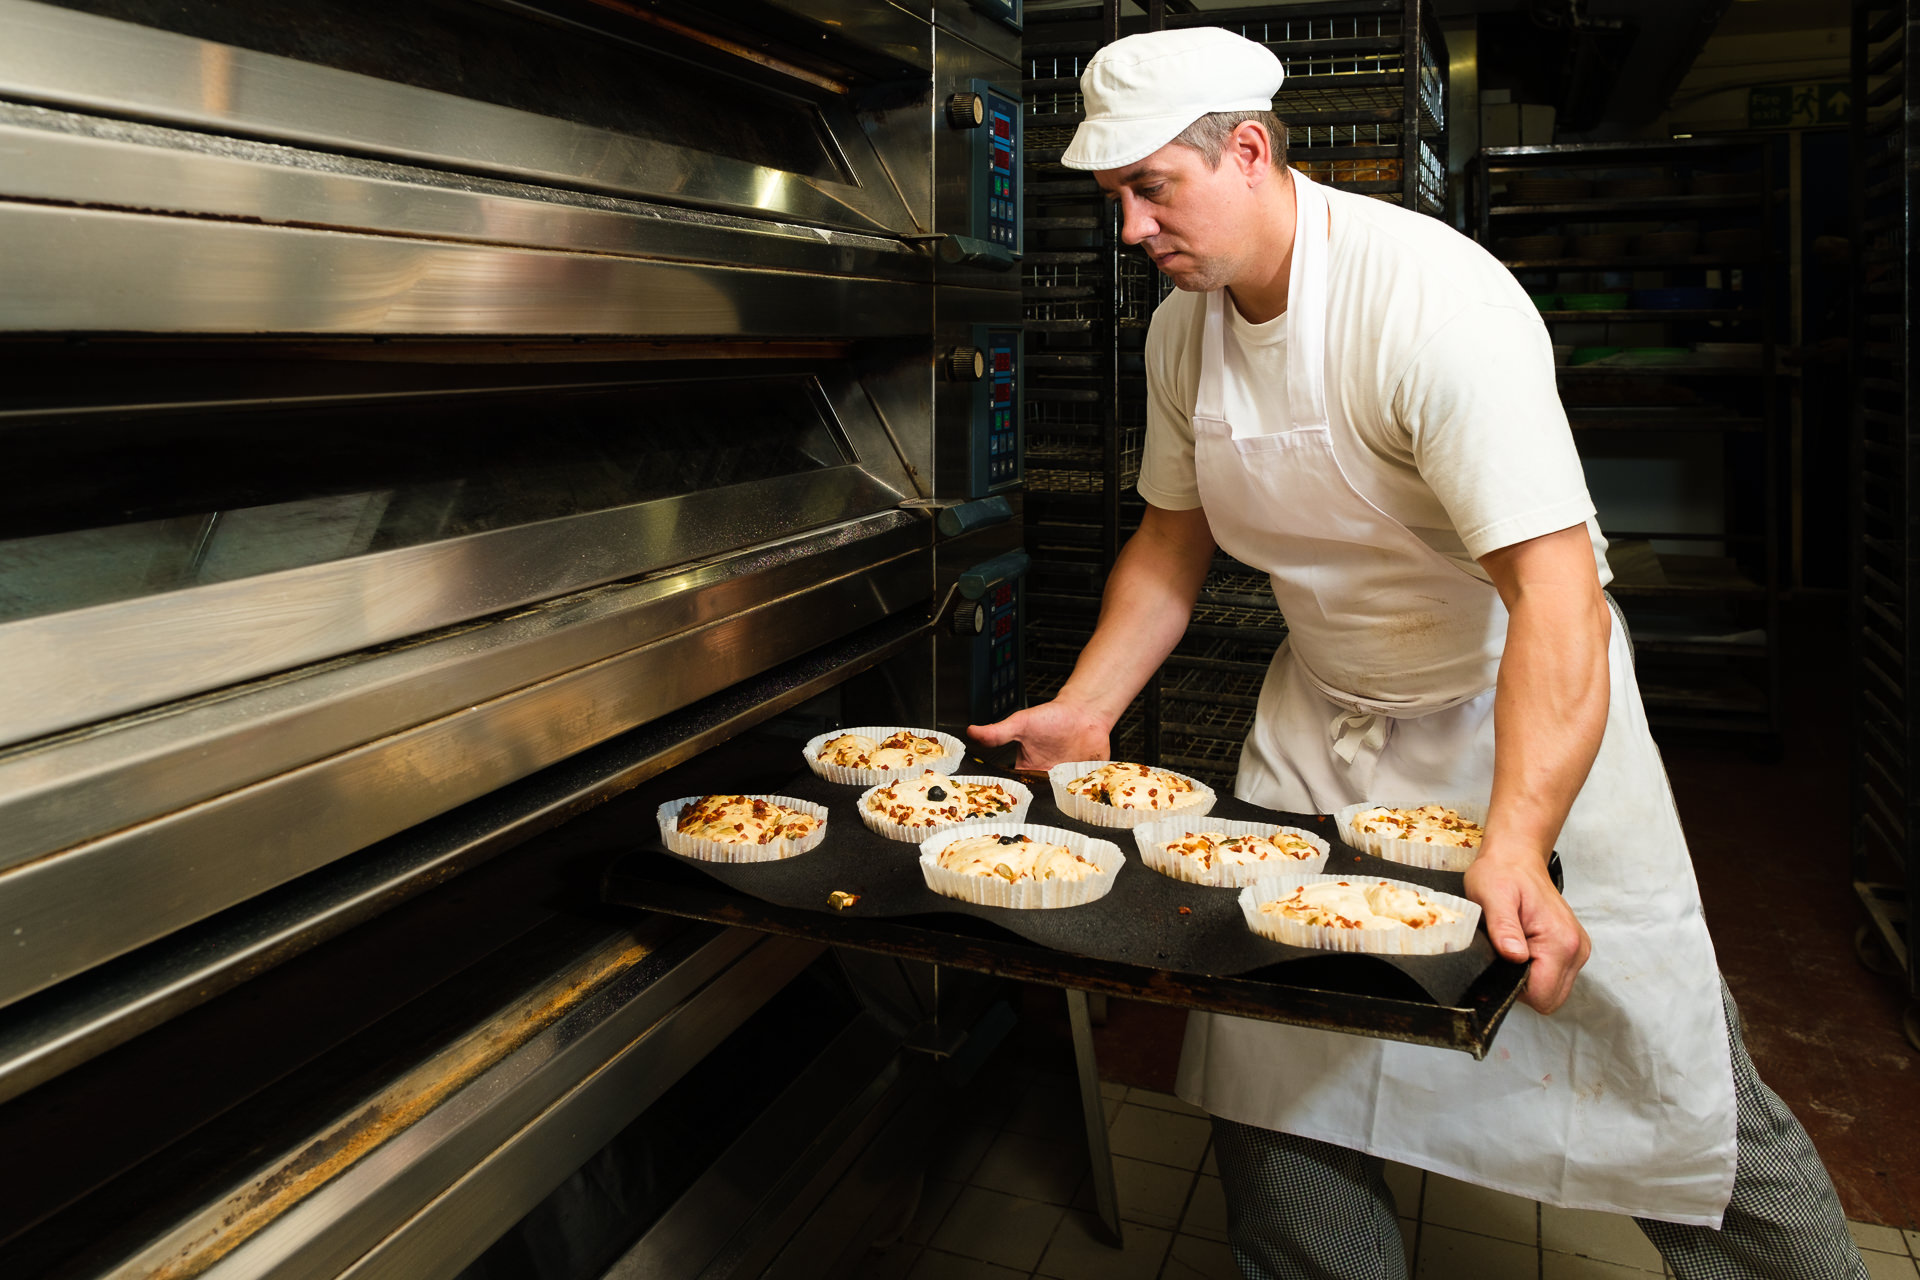 Bristol business photography with baker loading artisan breads into the oven